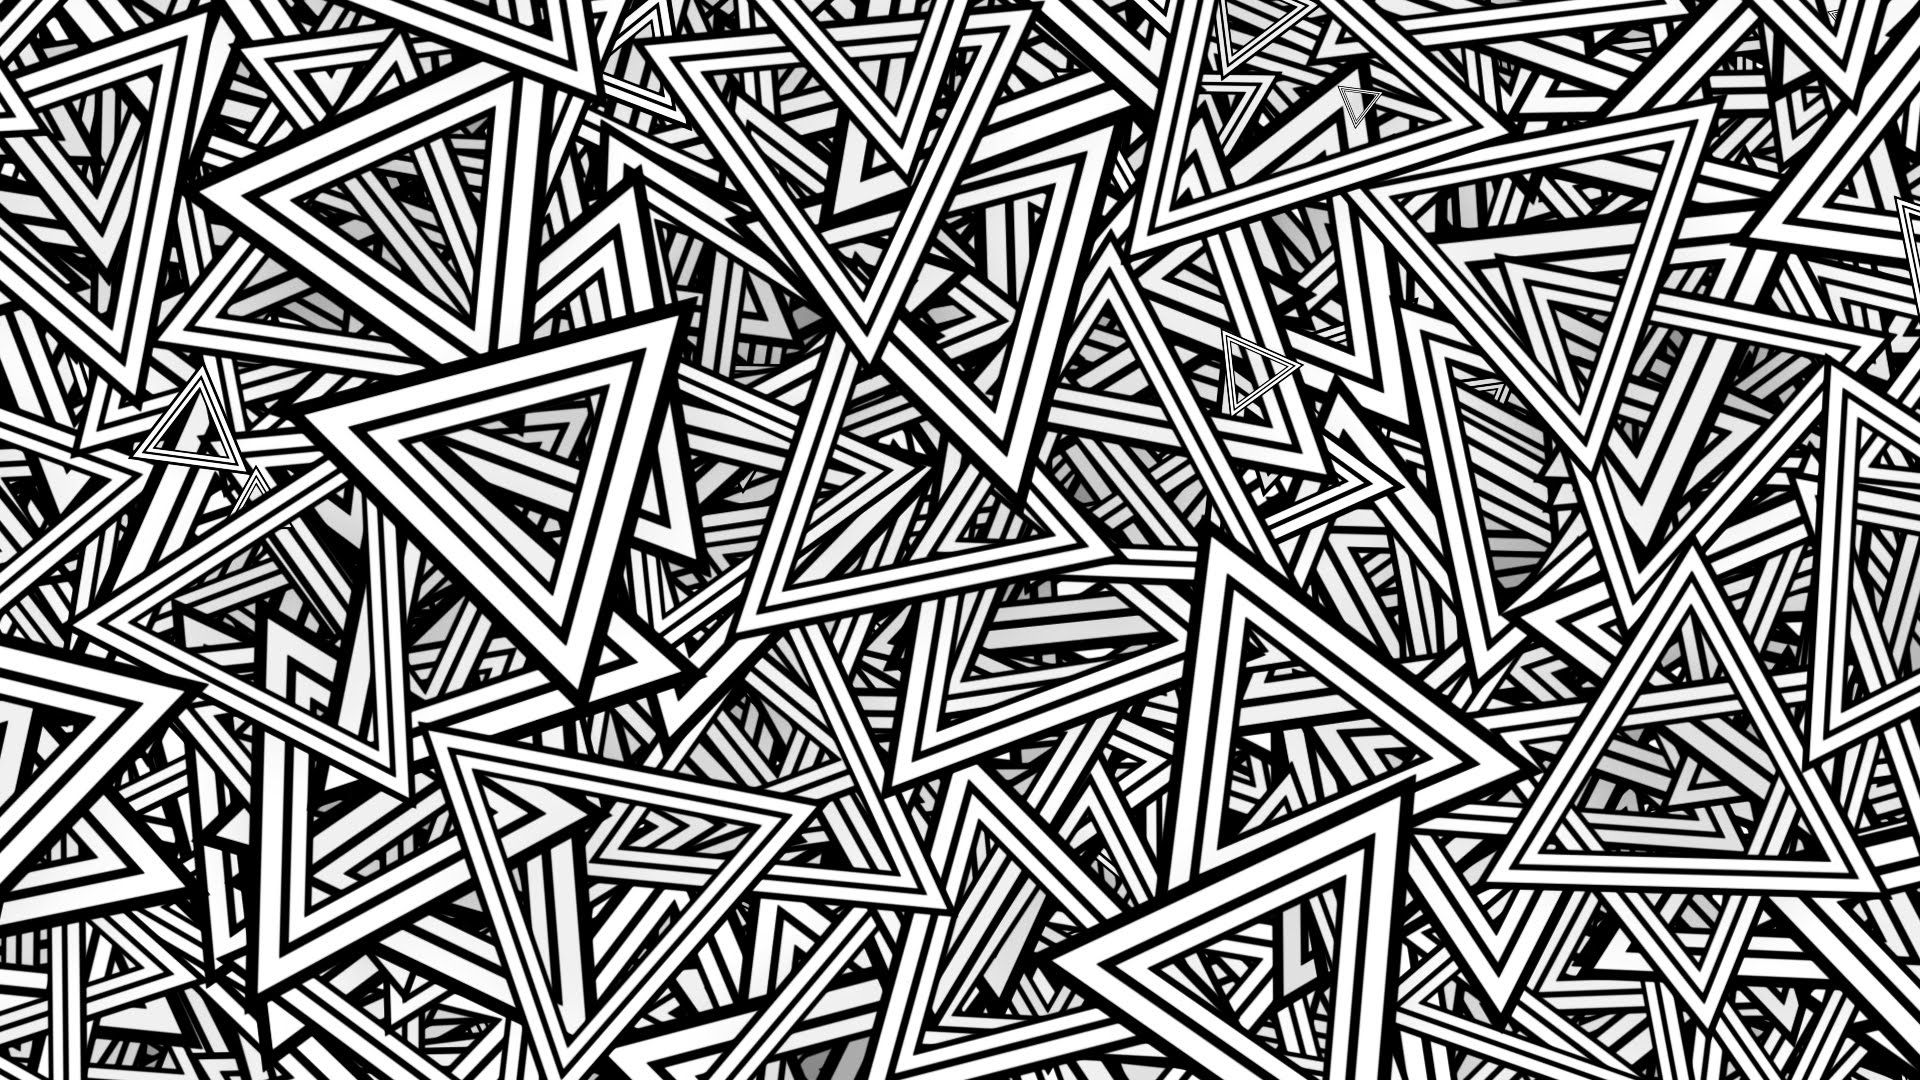 Art Deco Background Loop Patterns 1 Art deco wallpaper